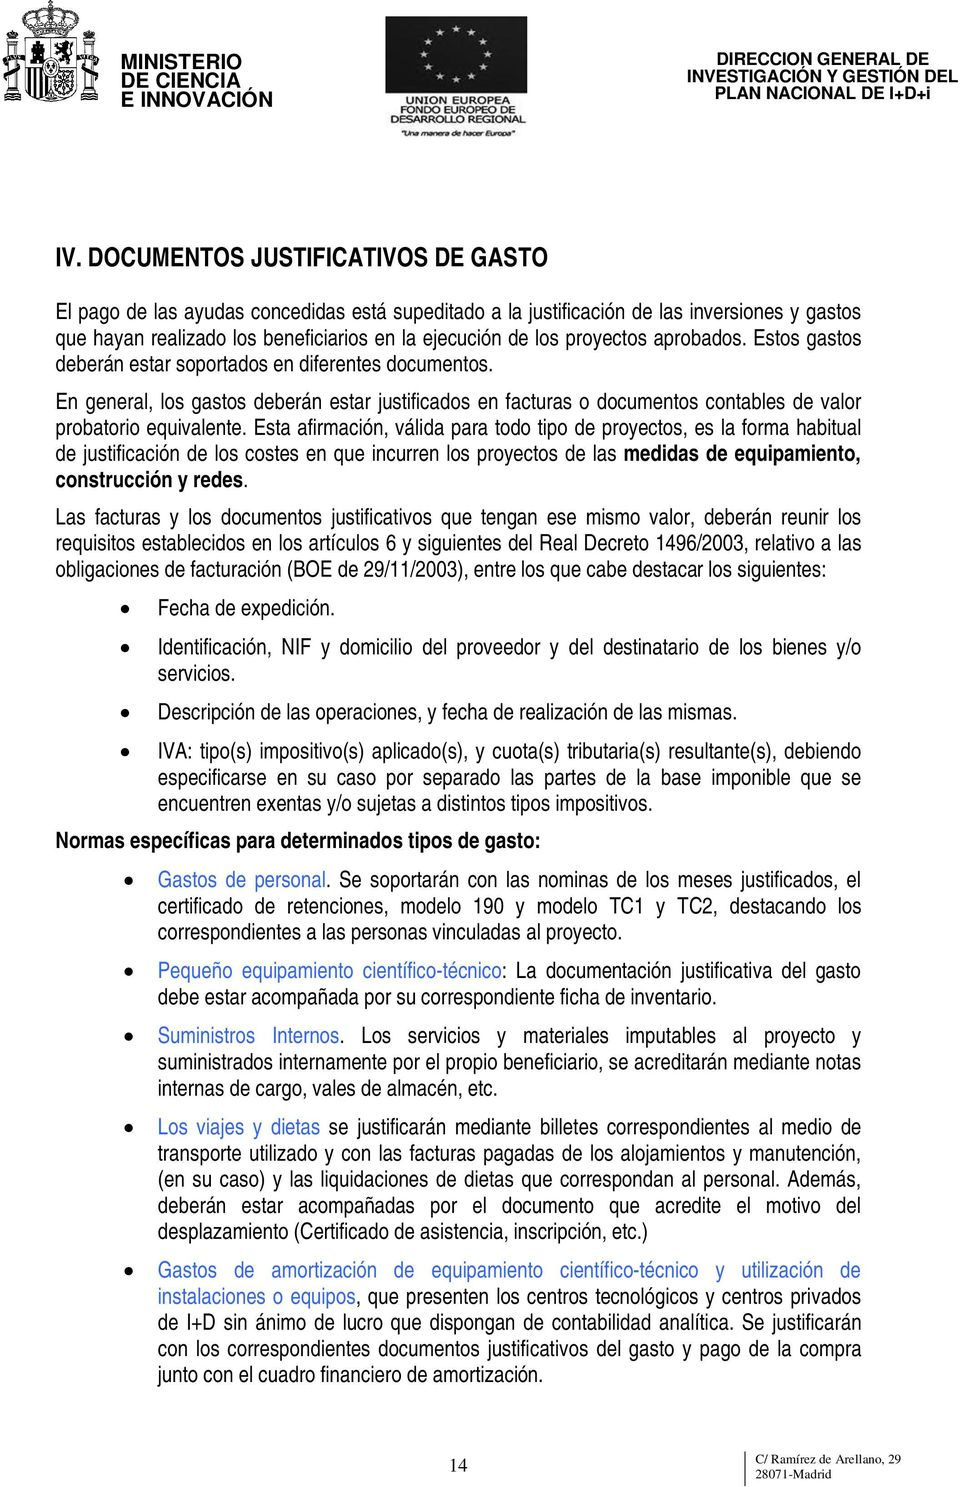 En general, los gastos deberán estar justificados en facturas o documentos contables de valor probatorio equivalente.